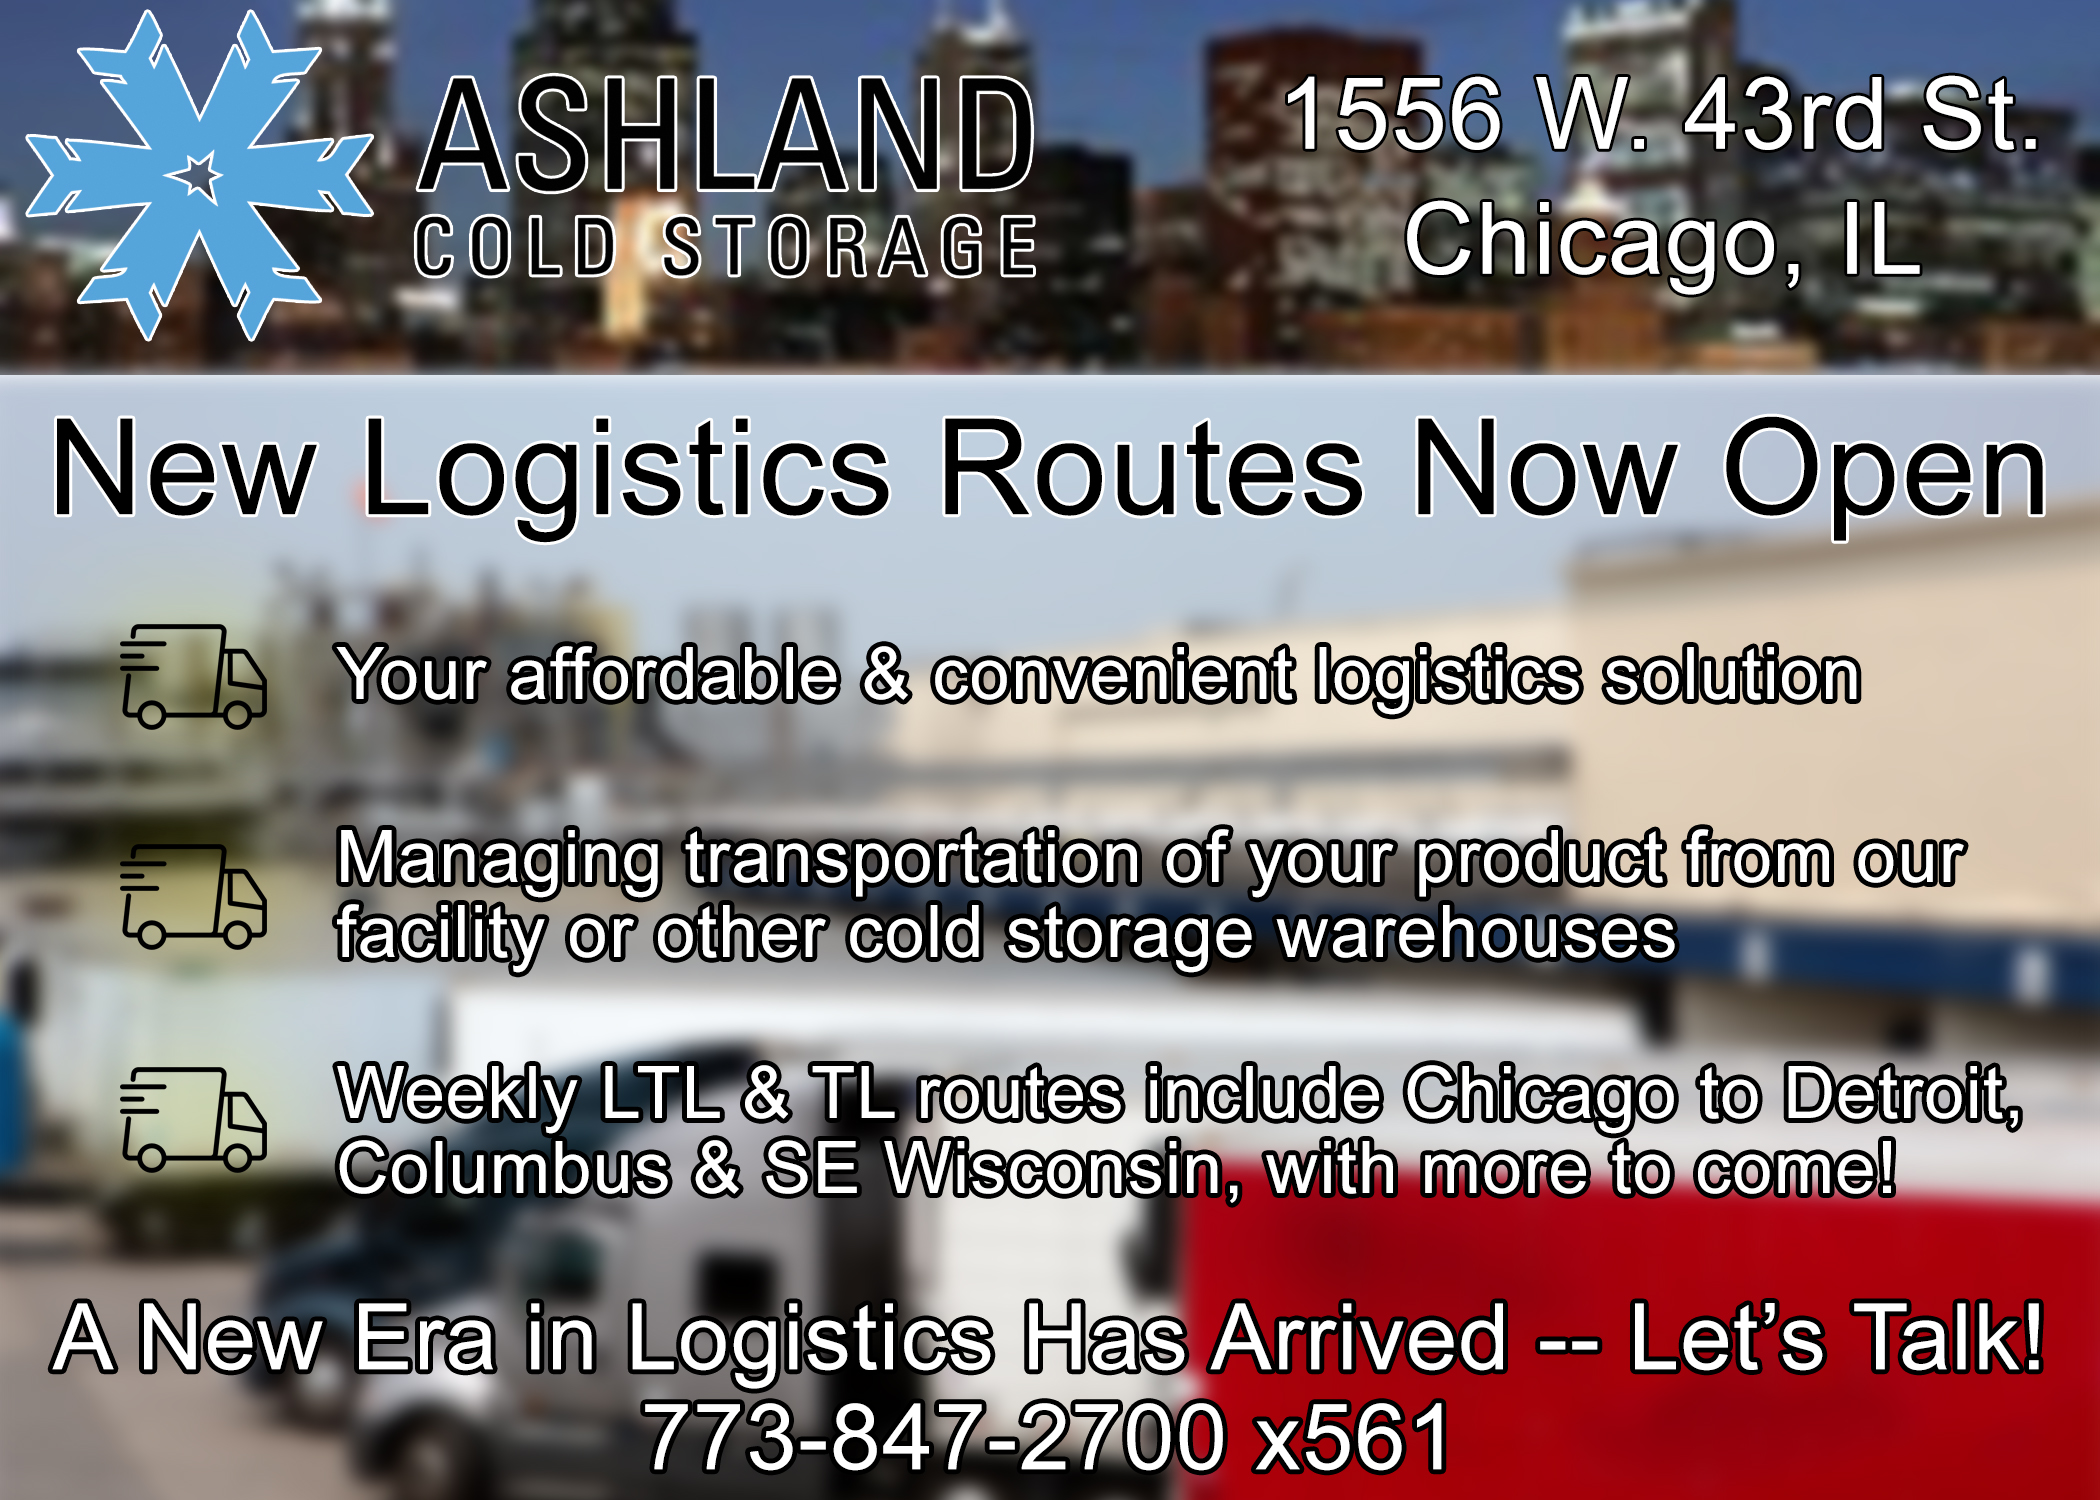 This Picture Explains Information about Our New Logistics Routes